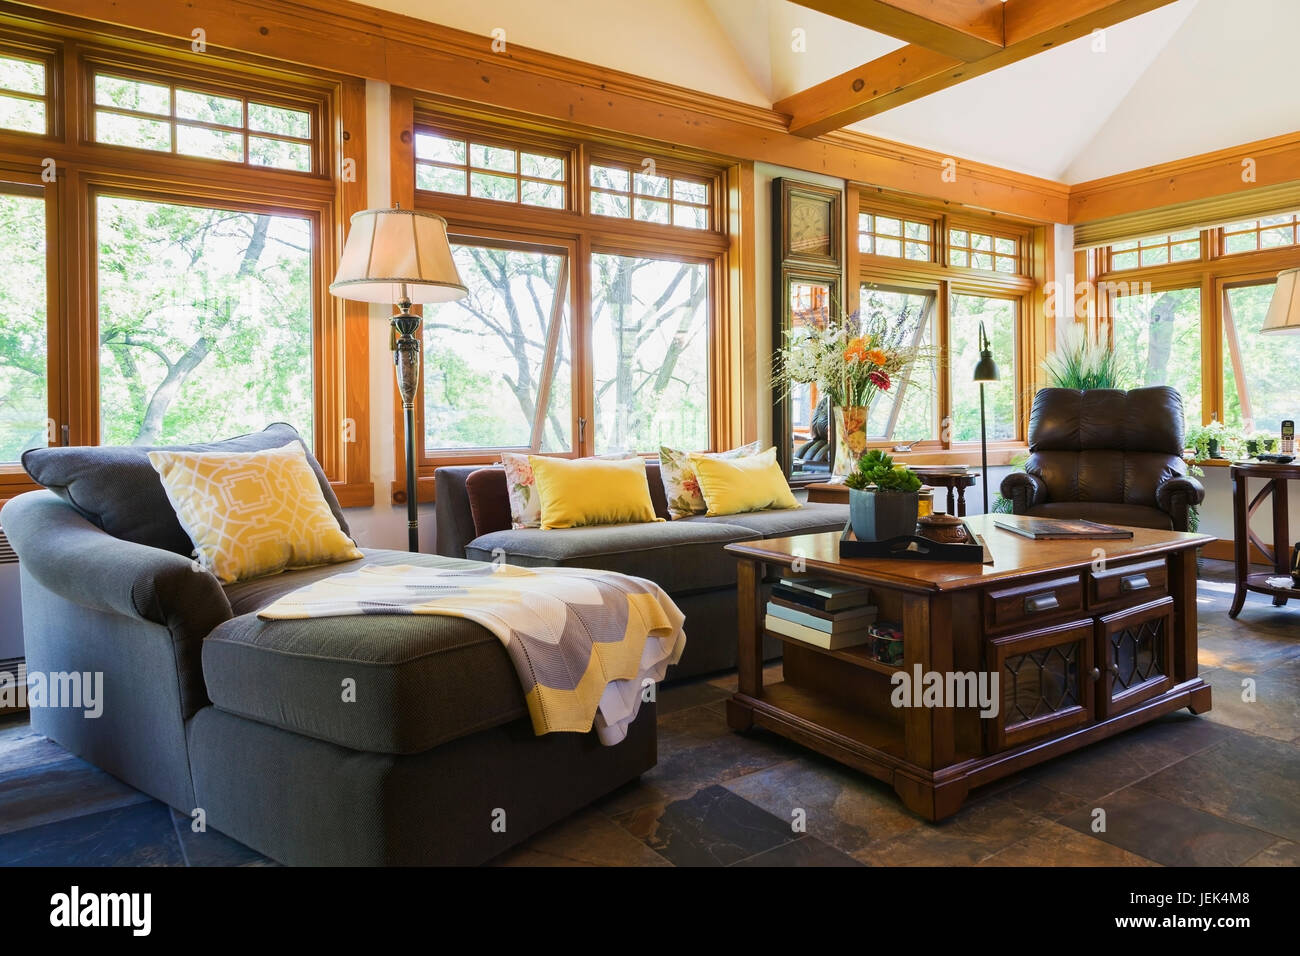 Sectional sofa and antique wooden coffee table in the new extension inside an old (circa 1740) Canadiana fieldstone - Stock Image